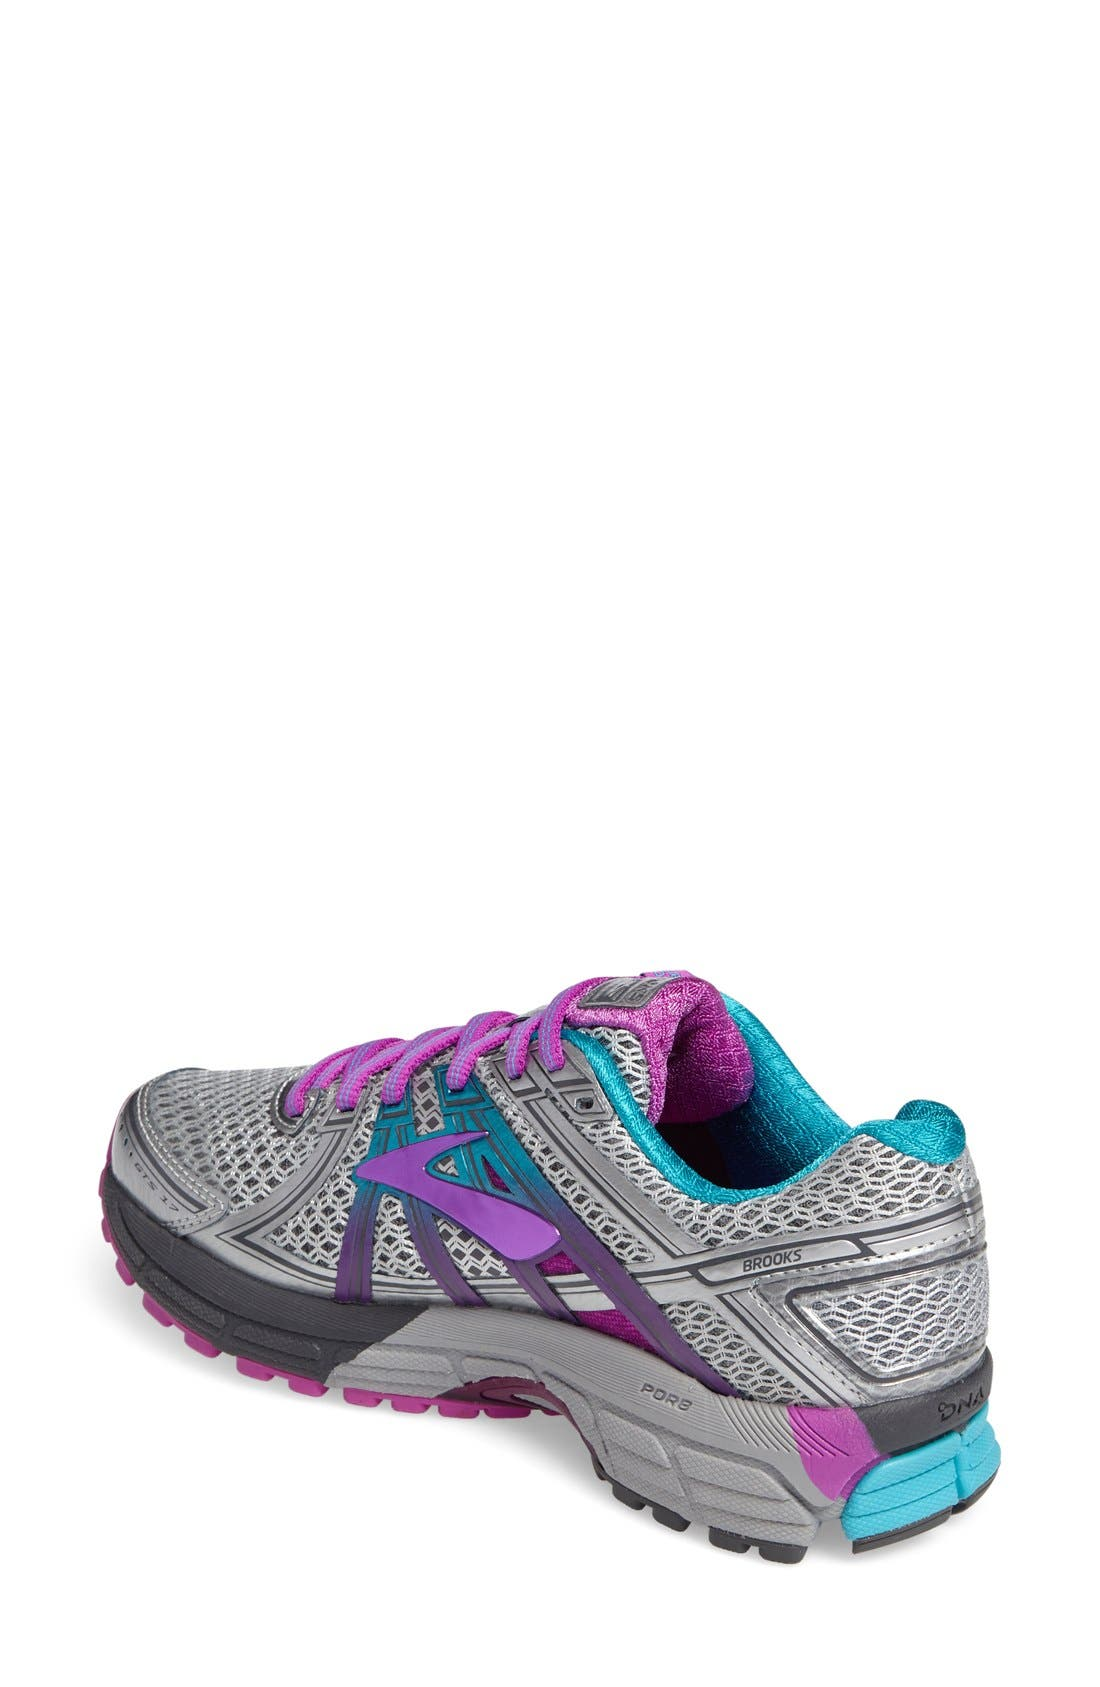 Adrenaline GTS 17 Running Shoe,                             Alternate thumbnail 17, color,